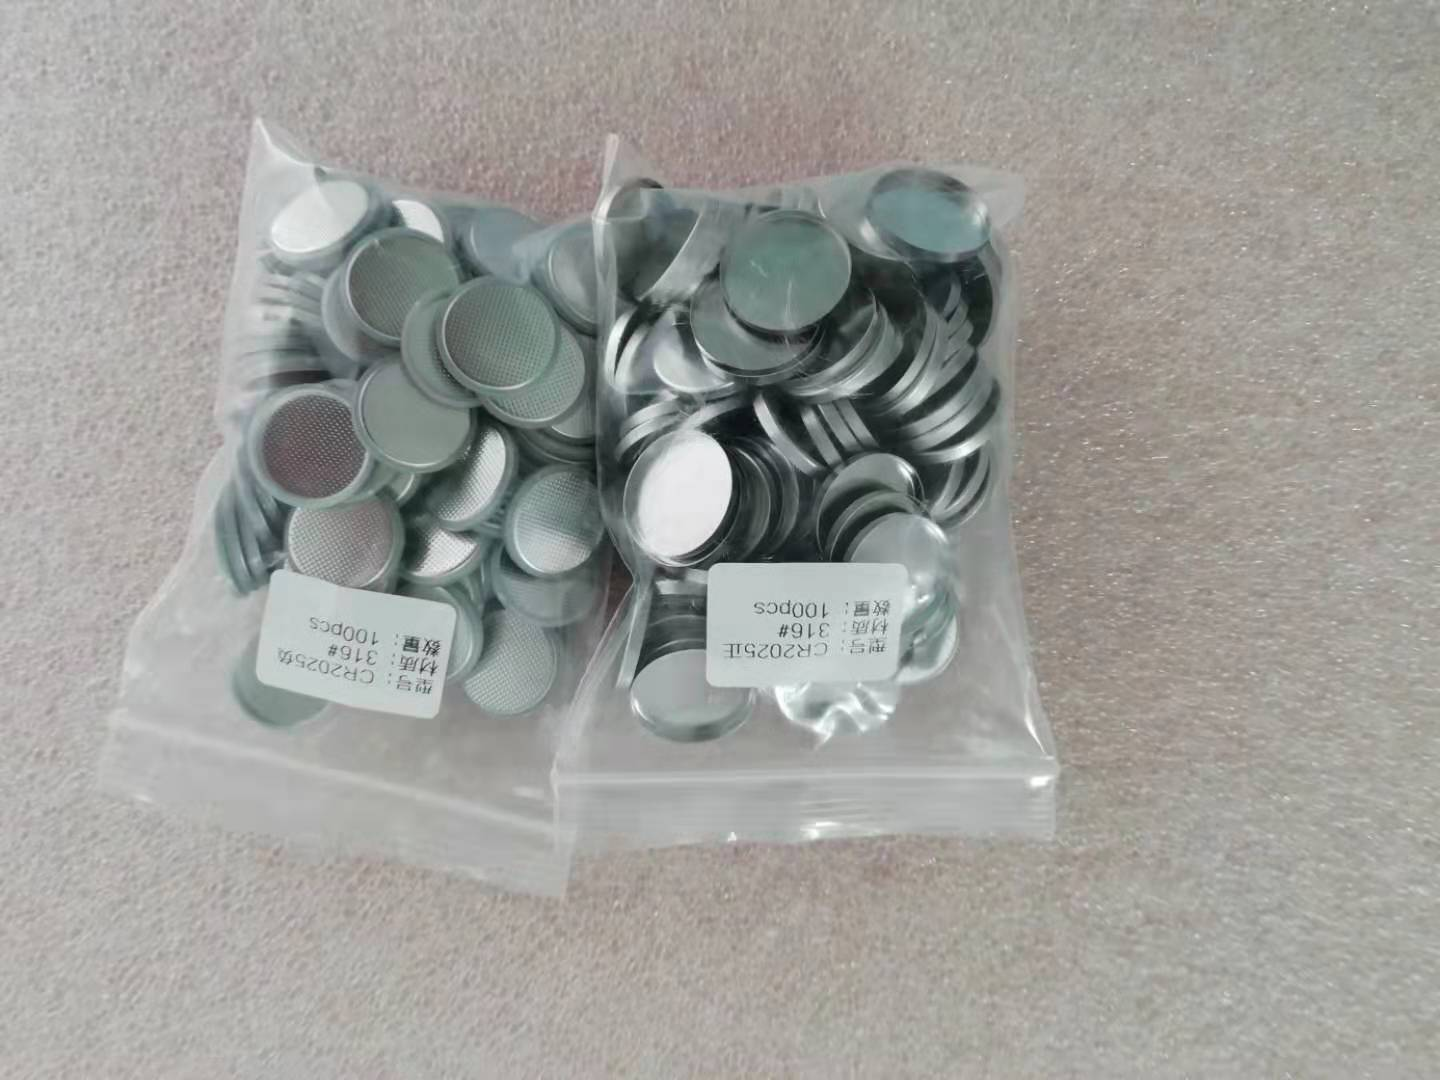 Stainless Steel CR2025 Coin Cell Button Battery Case Holder